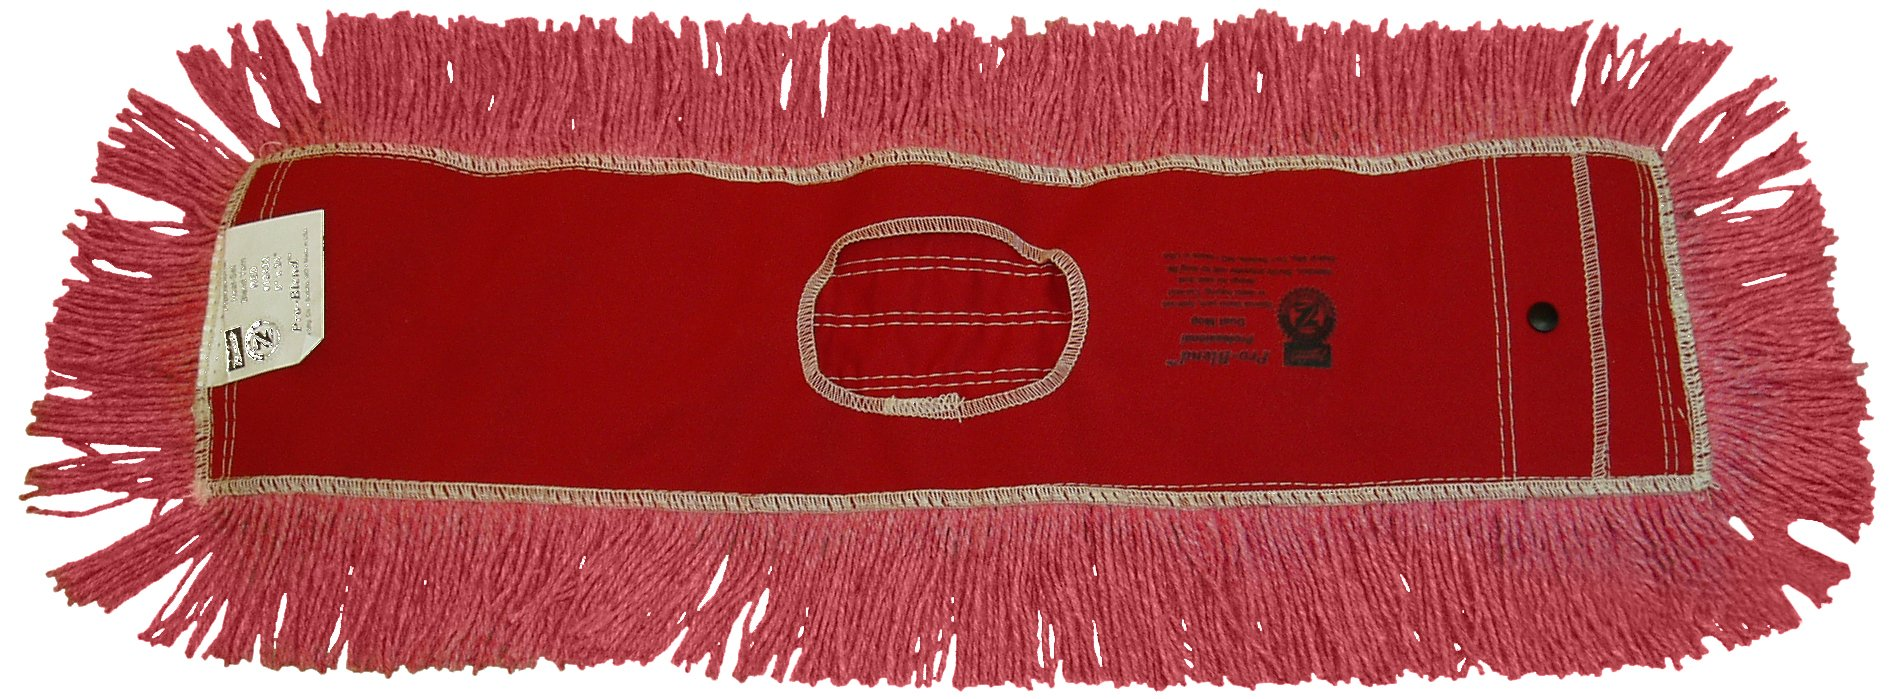 Zephyr 12436 Pro-Blend Red Dust Mop Head, 60'' Length x 5'' Width (Pack of 6) by Zephyr (Image #1)